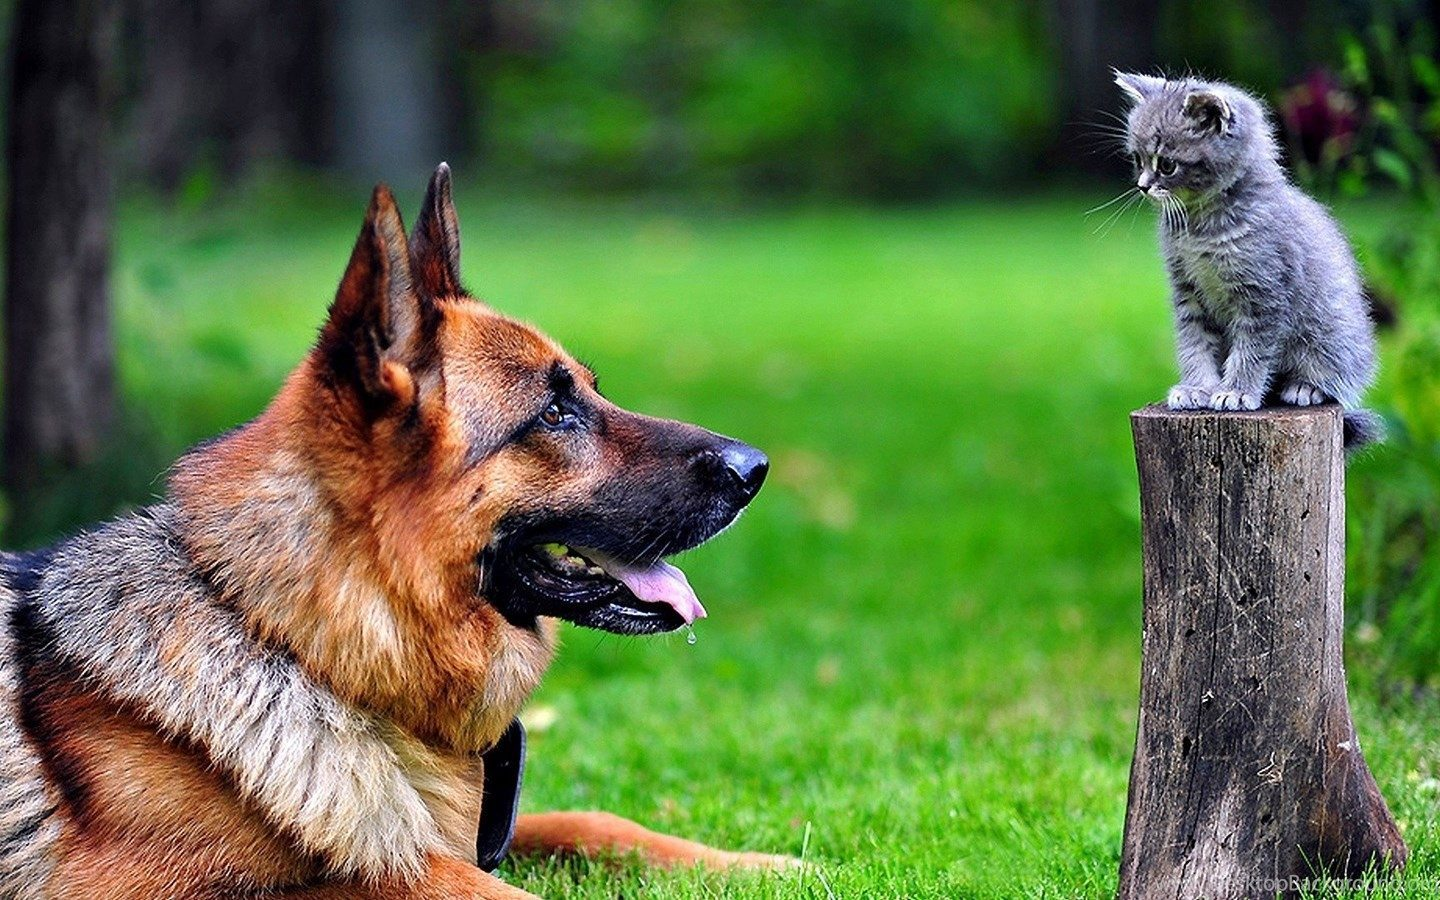 954537_hd-cute-dog-and-cat-wallpapers-hd-1920-1080-full-size_1920x1080_h